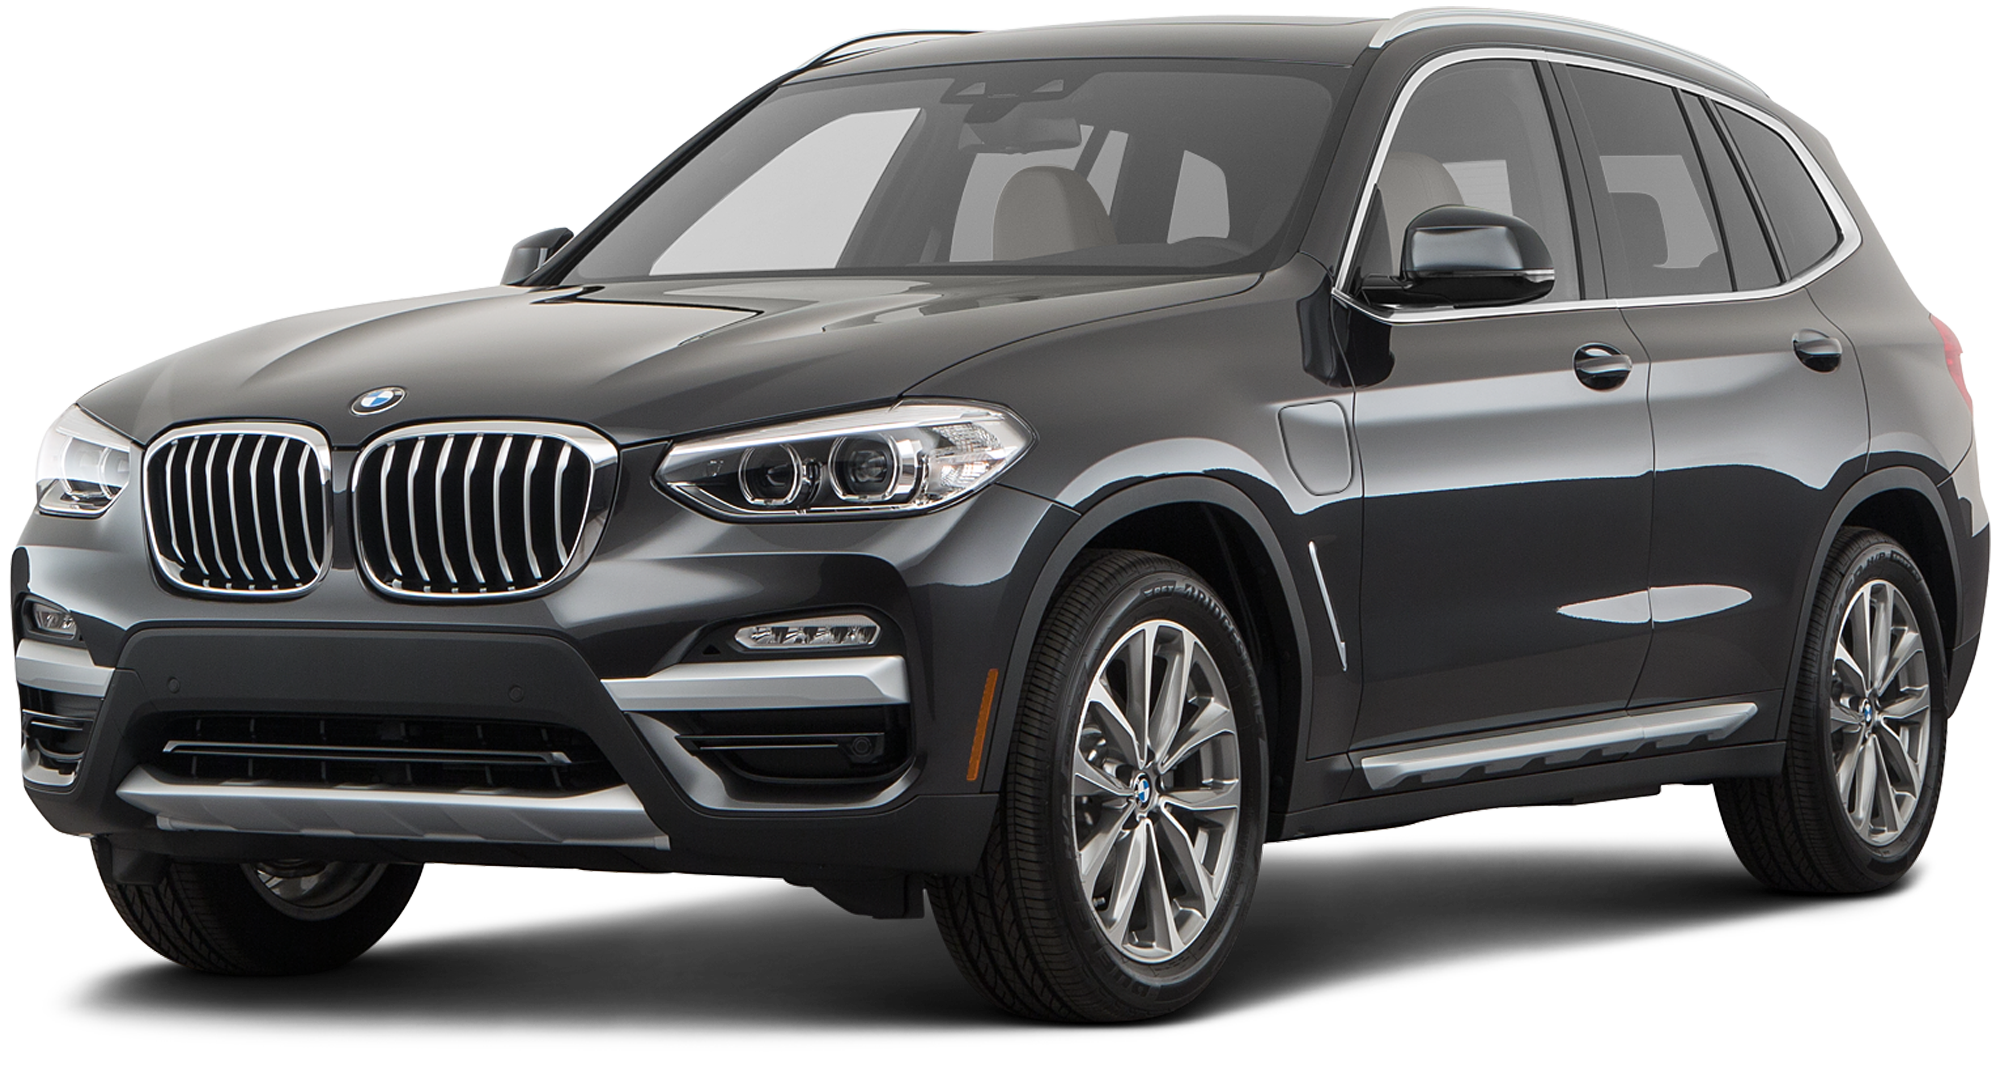 2020 BMW X3 PHEV Lease, Specials & Offers in Houston, TX